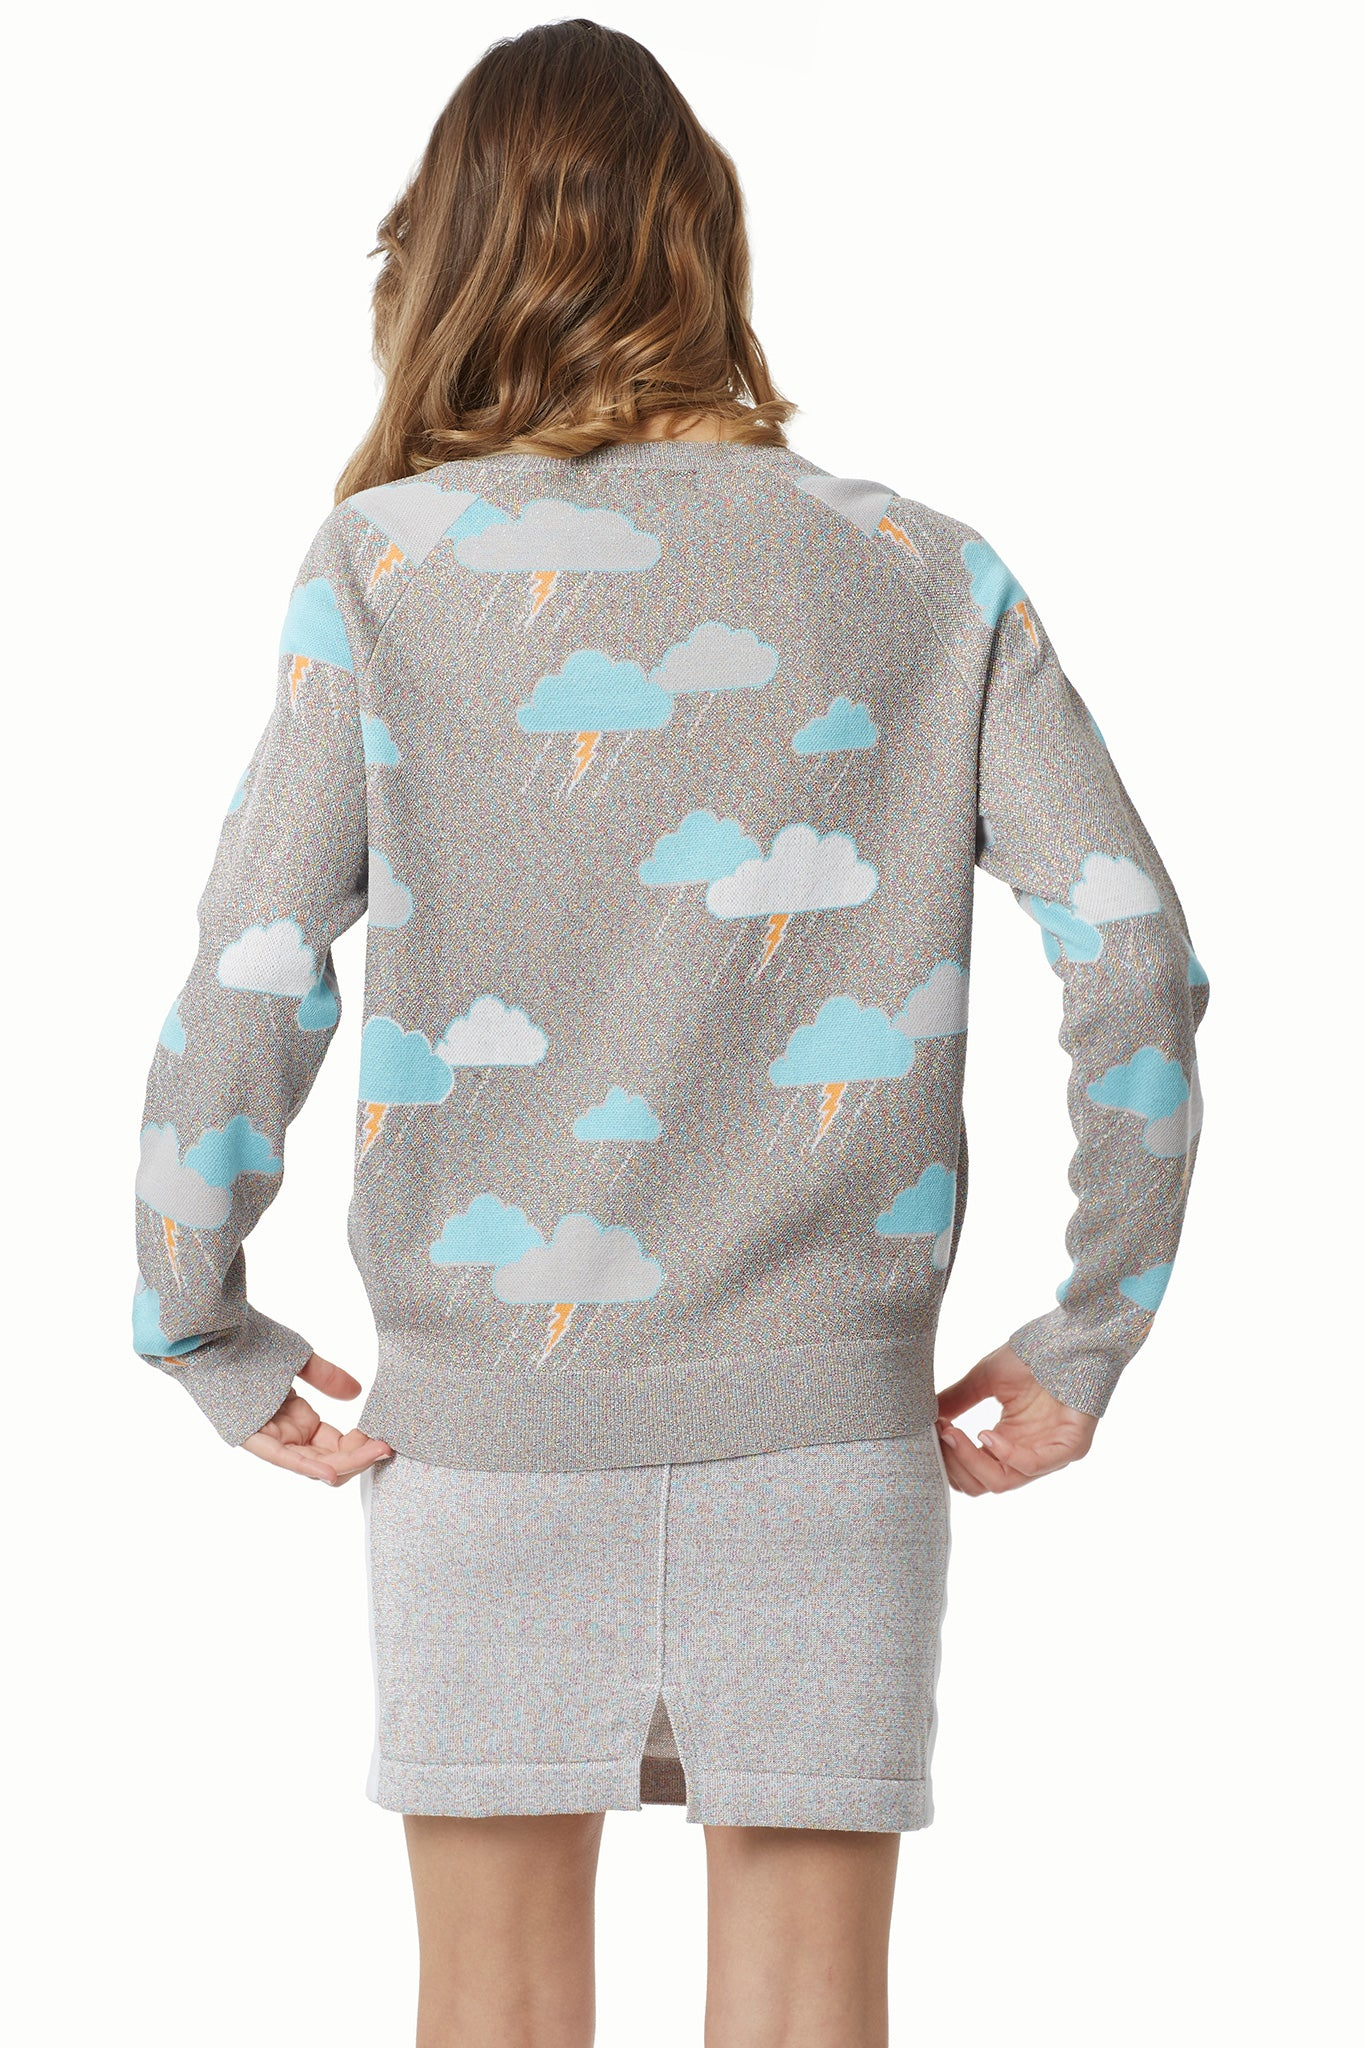 Stormy Rainbow Lurex Knit Sweatshirt